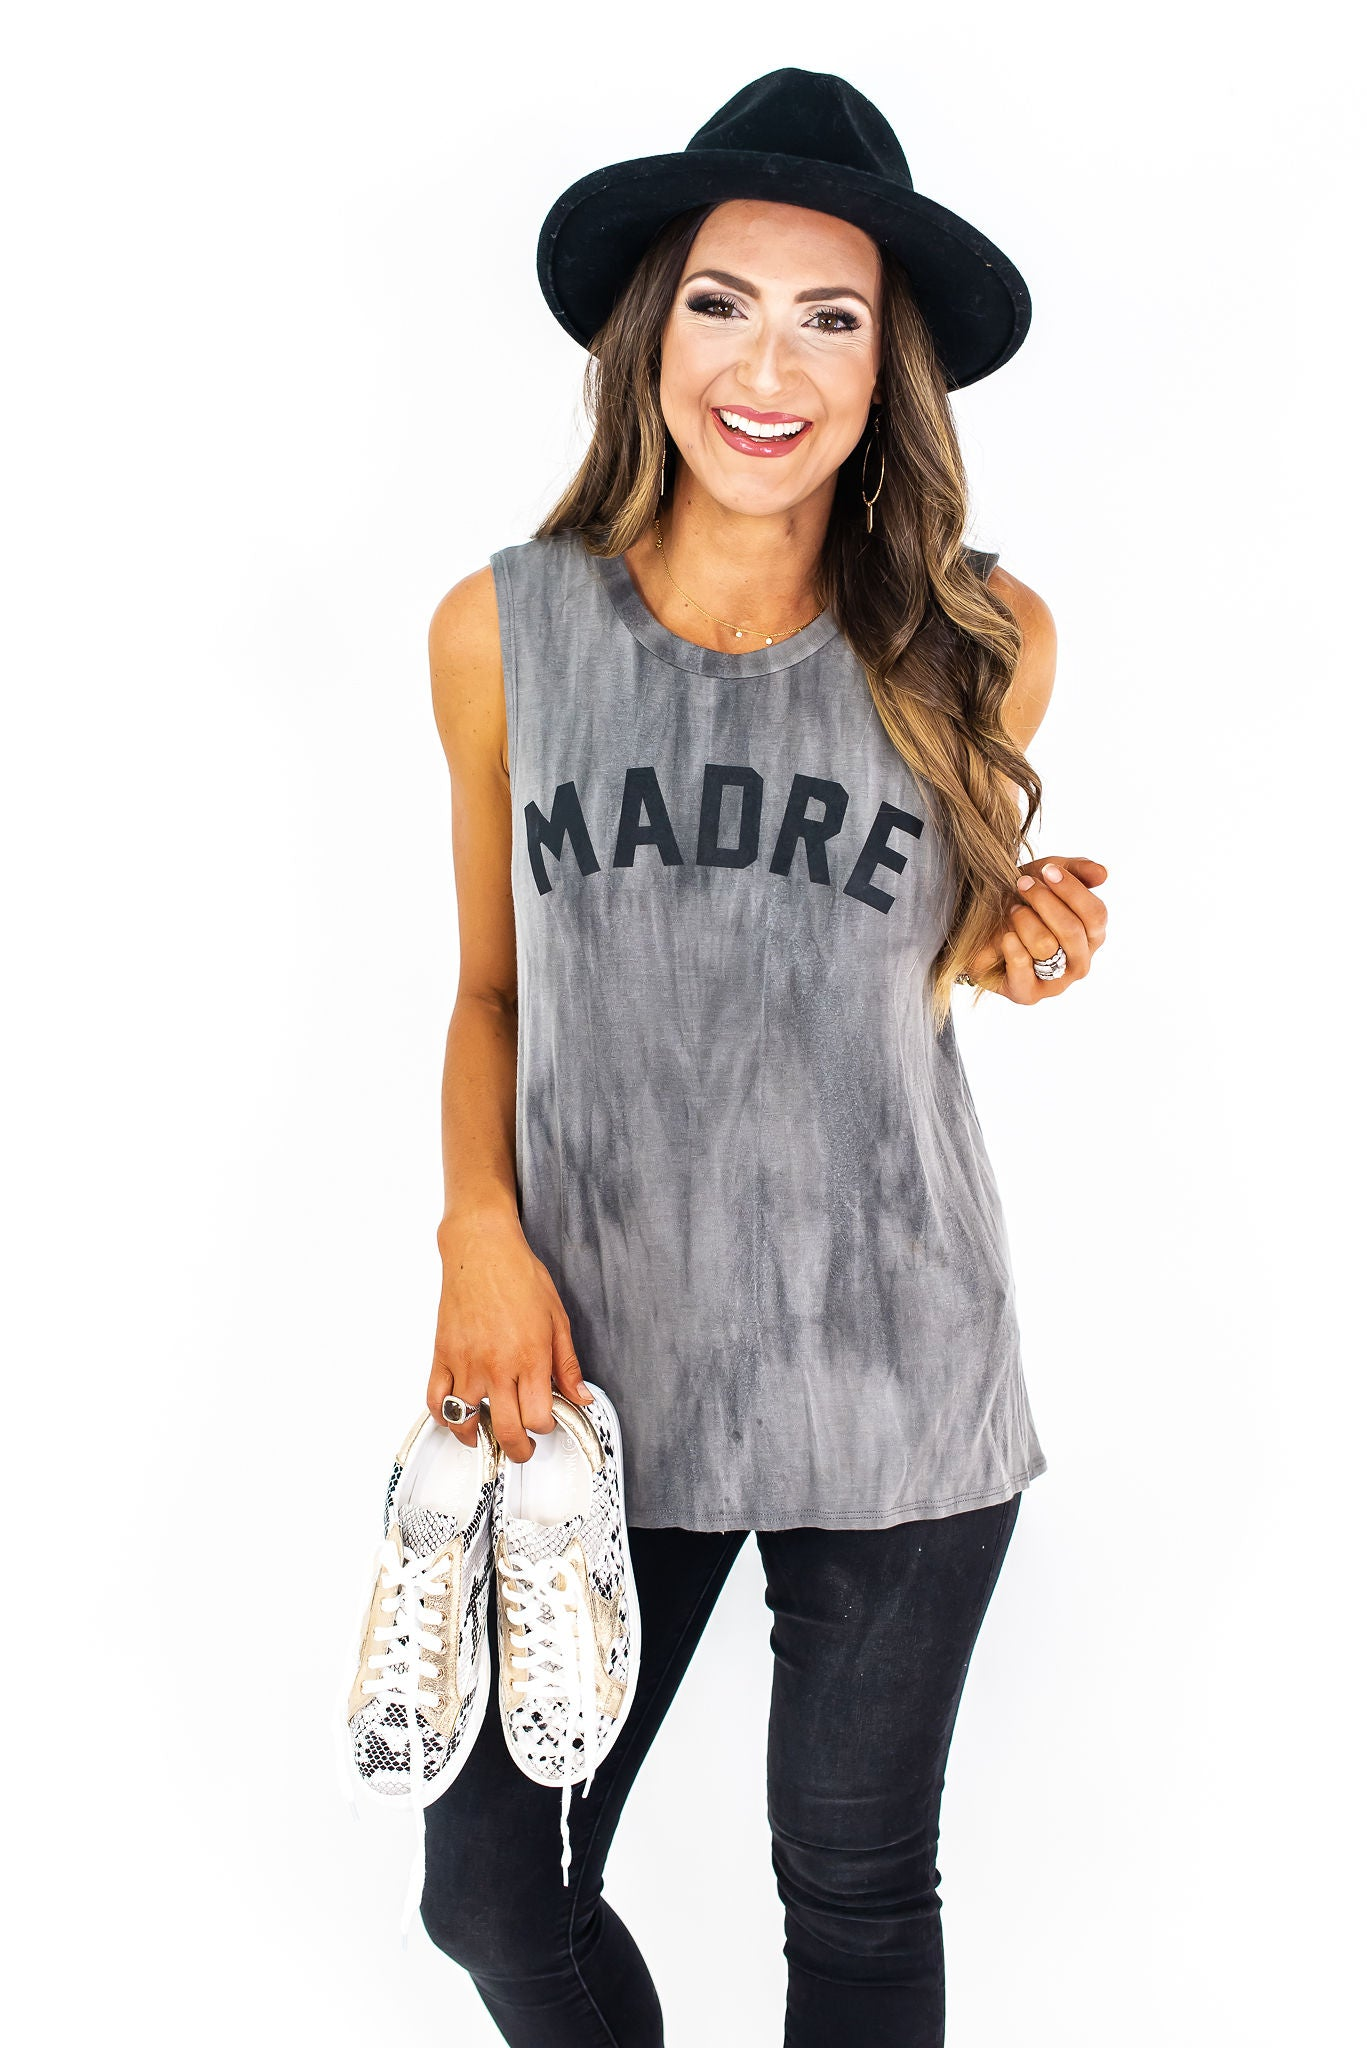 Madre Sleeveless Graphic Tee